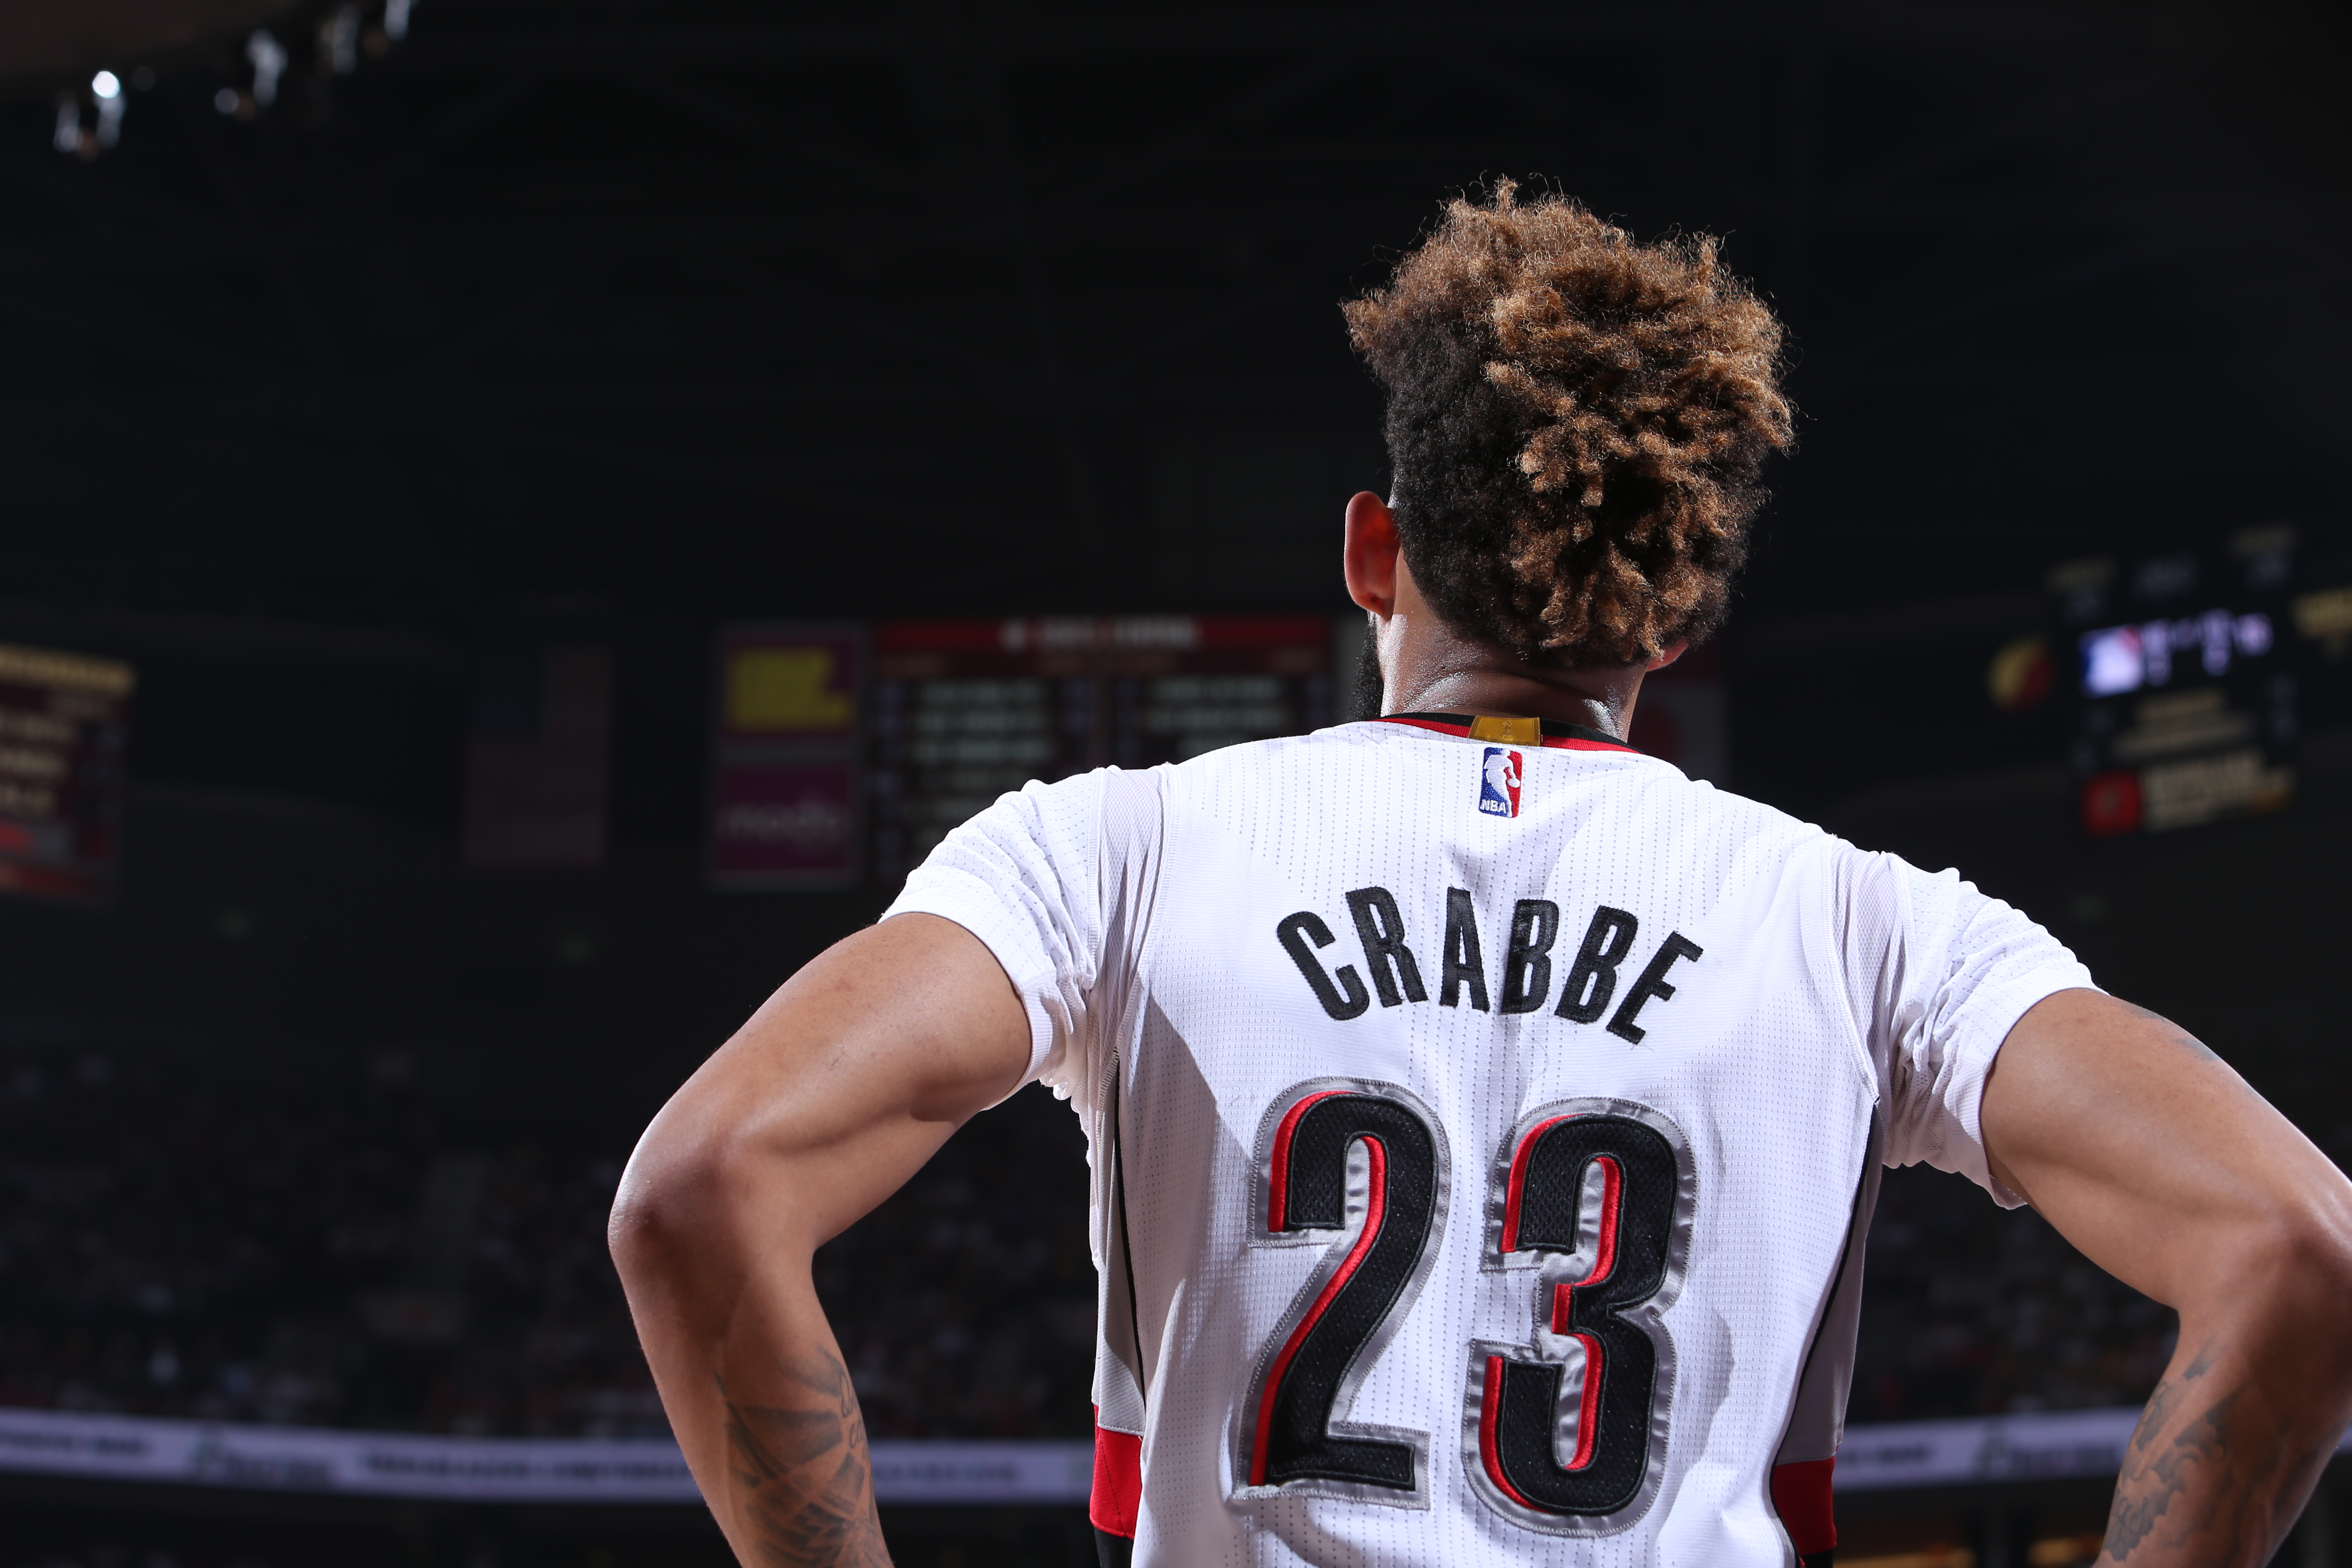 PORTLAND, OR - MAY 7: Allen Crabbe #23 of the Portland Trail Blazers looks on against the Golden State Warriors in Game Three of the Western Conference Semifinals during the 2016 NBA Playoffs on May 7, 2016 at the Moda Center in Portland, Oregon. NOTE TO USER: User expressly acknowledges and agrees that, by downloading and or using this Photograph, user is consenting to the terms and conditions of the Getty Images License Agreement. Mandatory Copyright Notice: Copyright 2016 NBAE (Photo by Sam Forencich/NBAE via Getty Images)